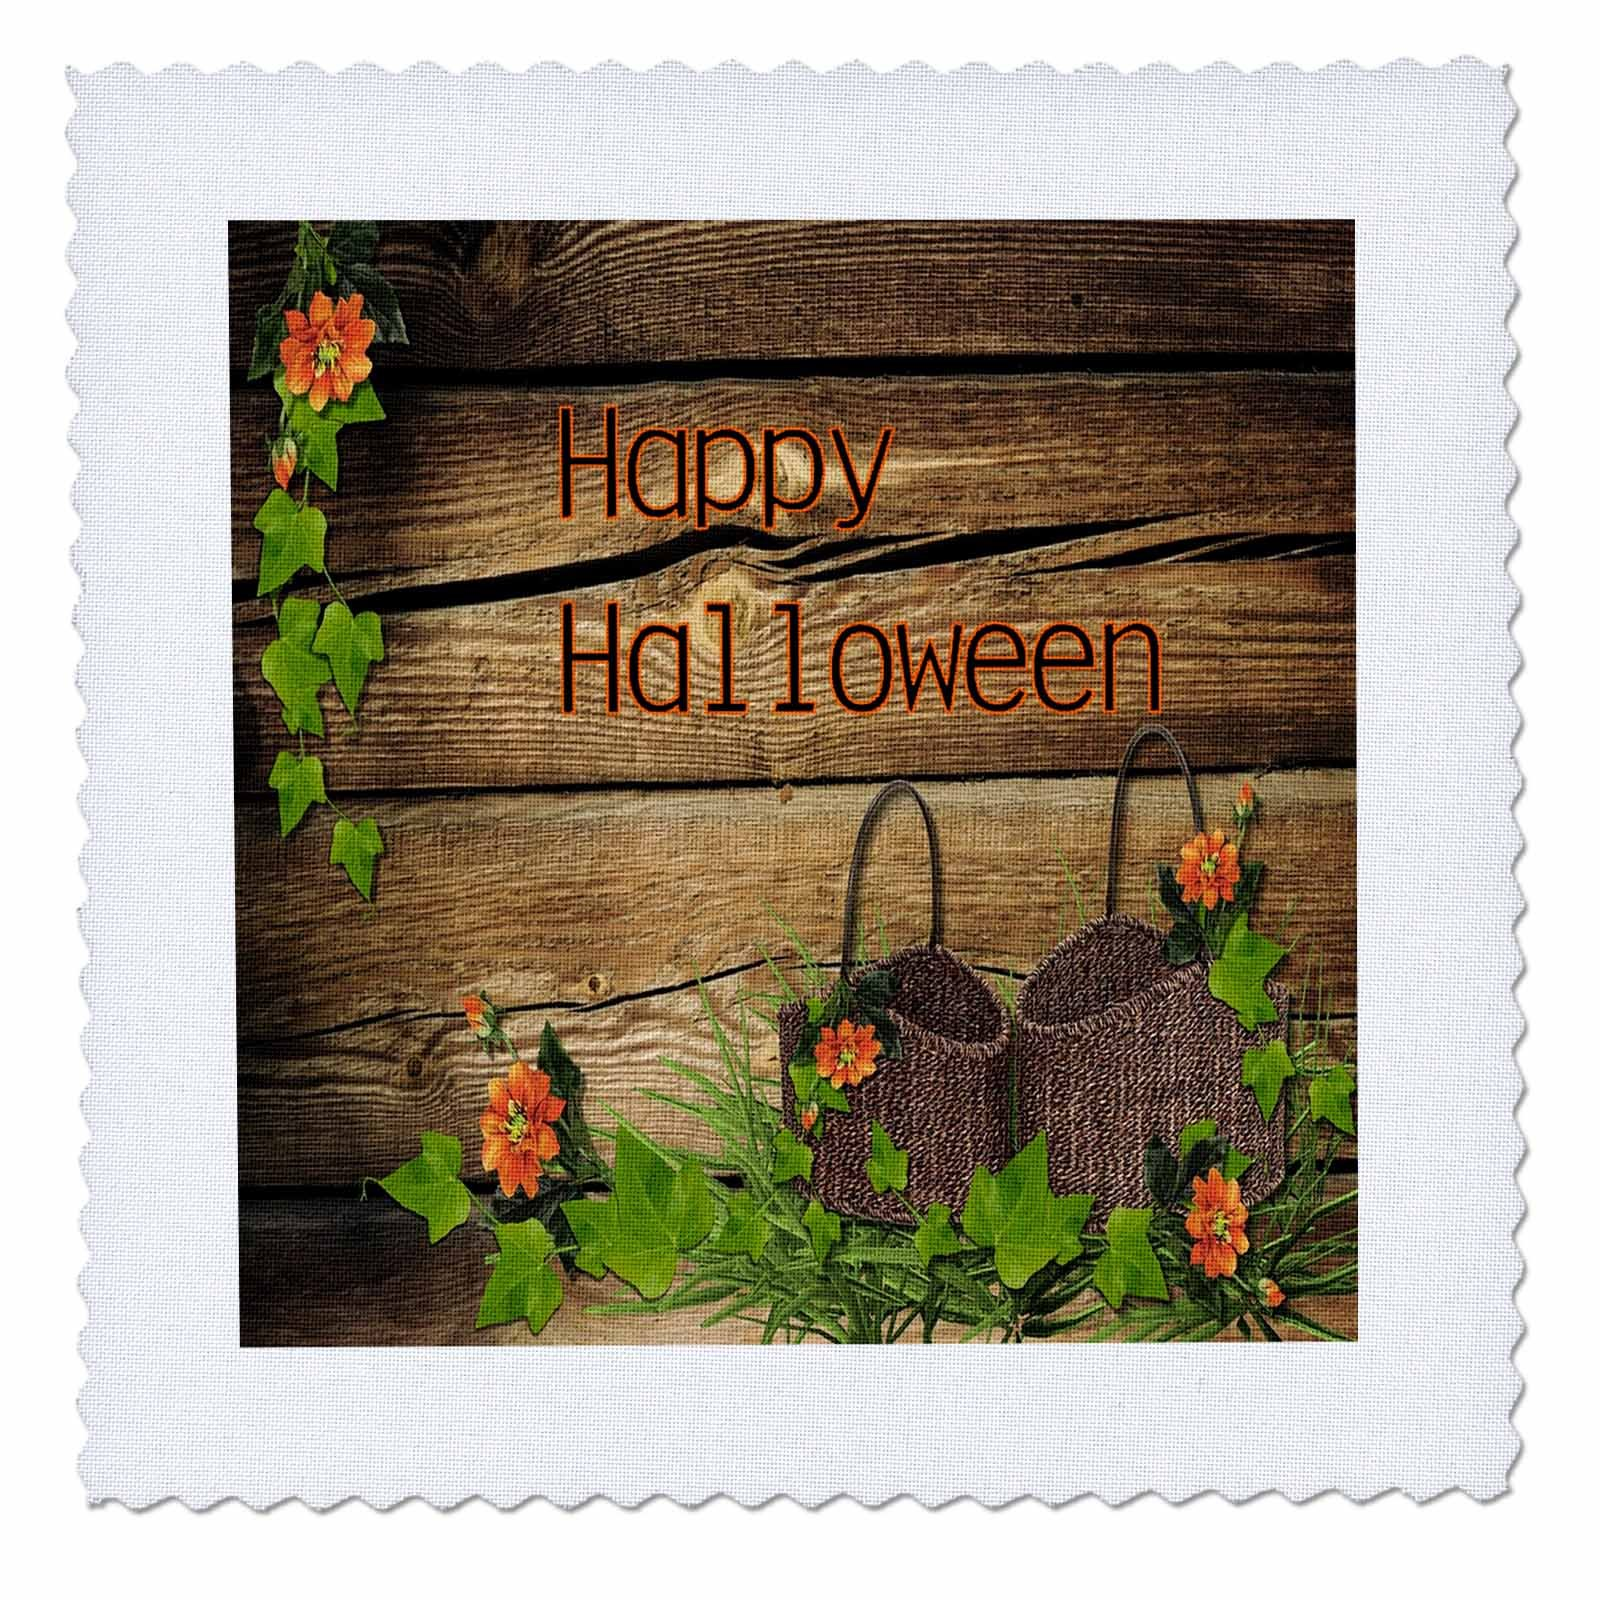 3dRose Halloween - Image of Happy Halloween On Country Wood With Baskets - 18x18 inch quilt square (qs_262499_7)